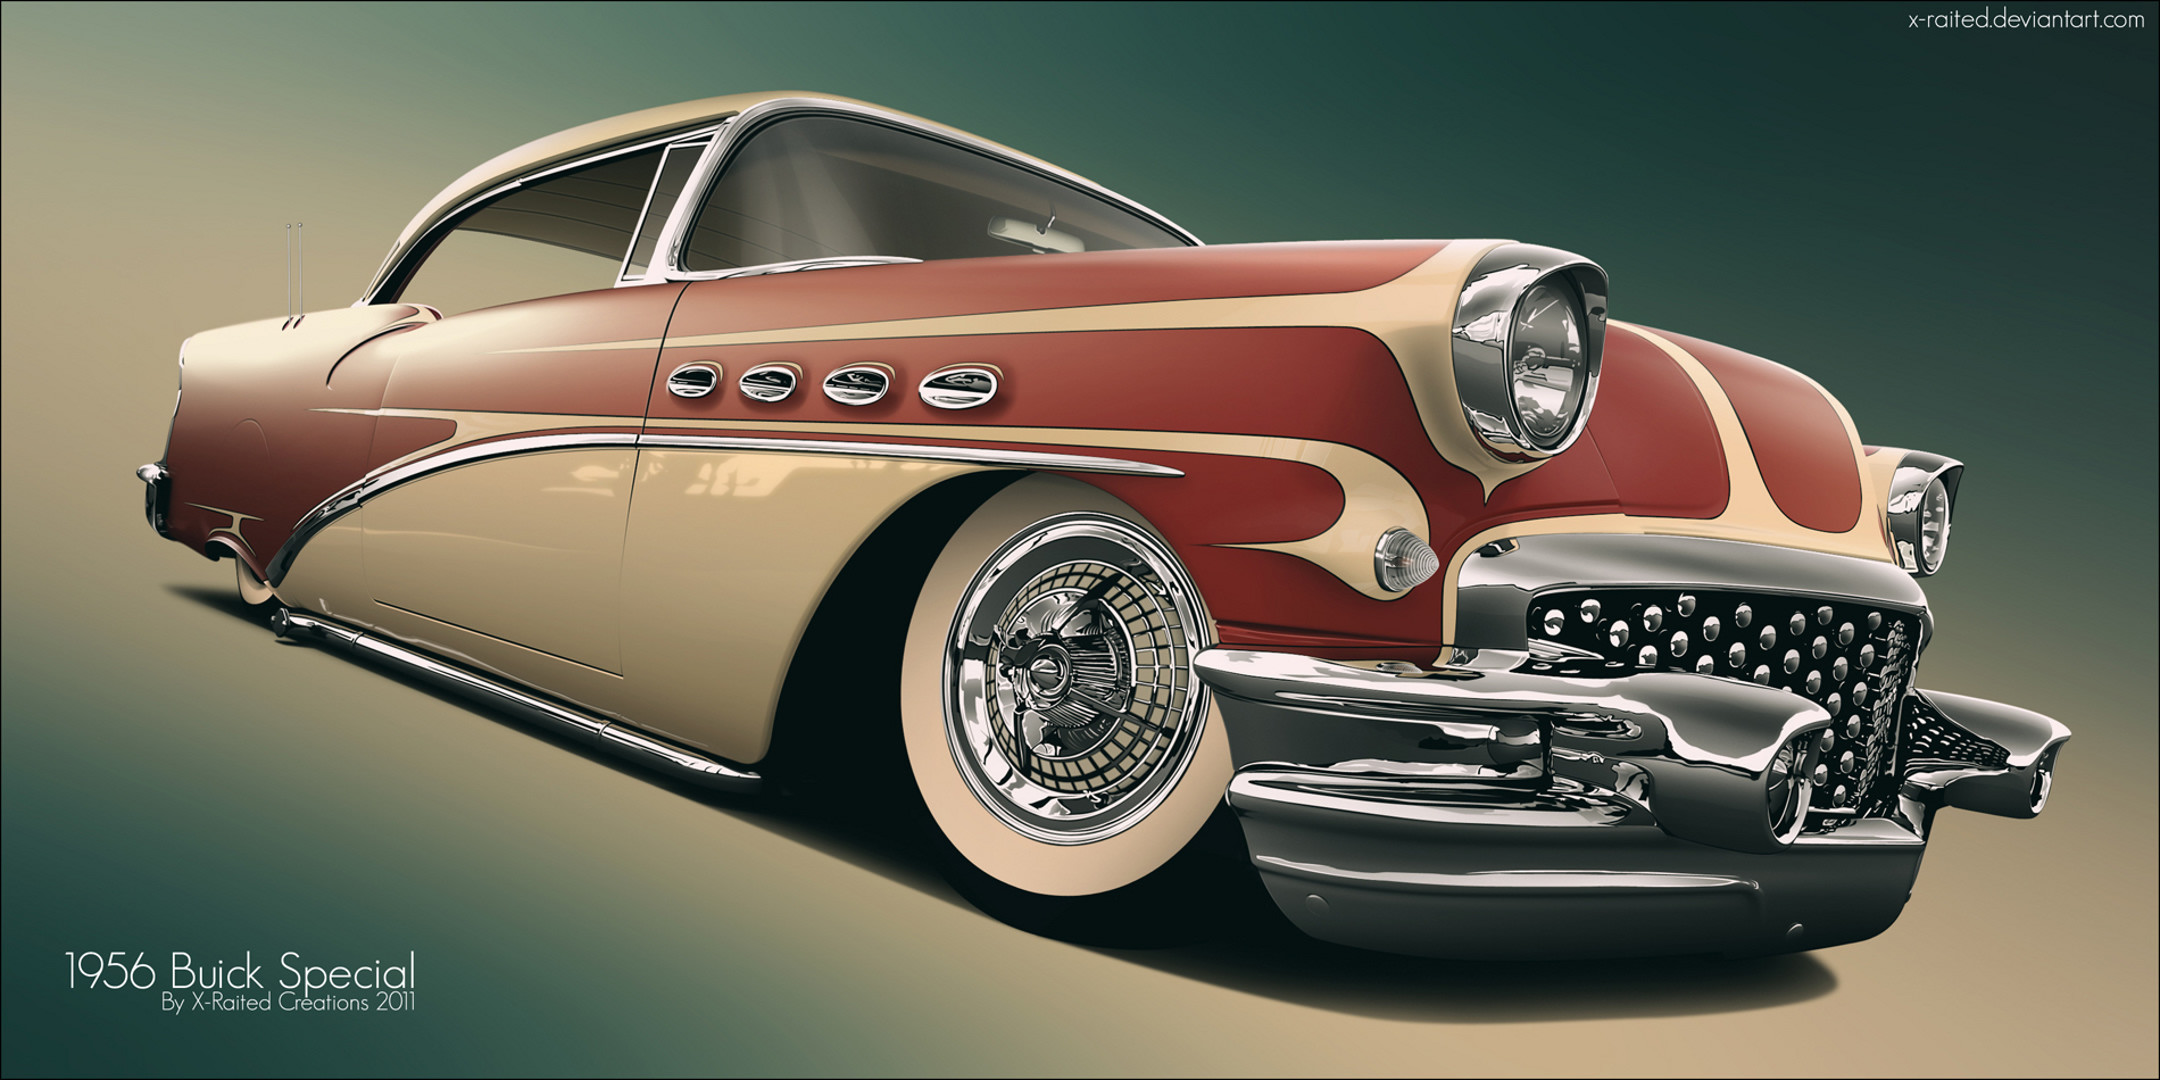 2160x1080 Lowrider Arte Wallpaper - Wallpapers Browse